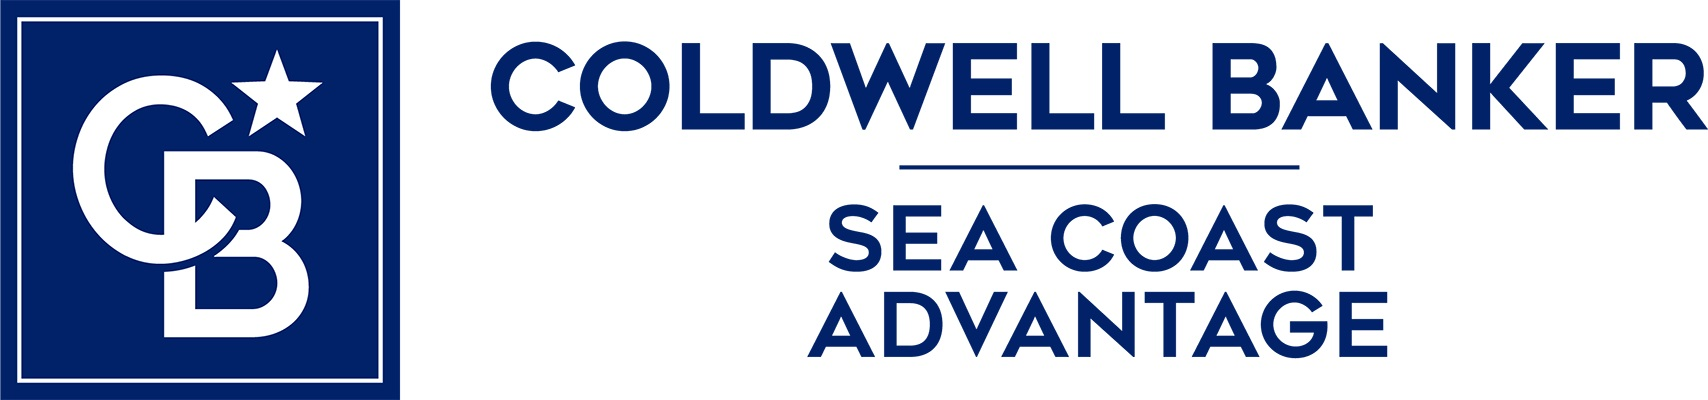 Mark Koellmer - Coldwell Banker Sea Coast Advantage Realty